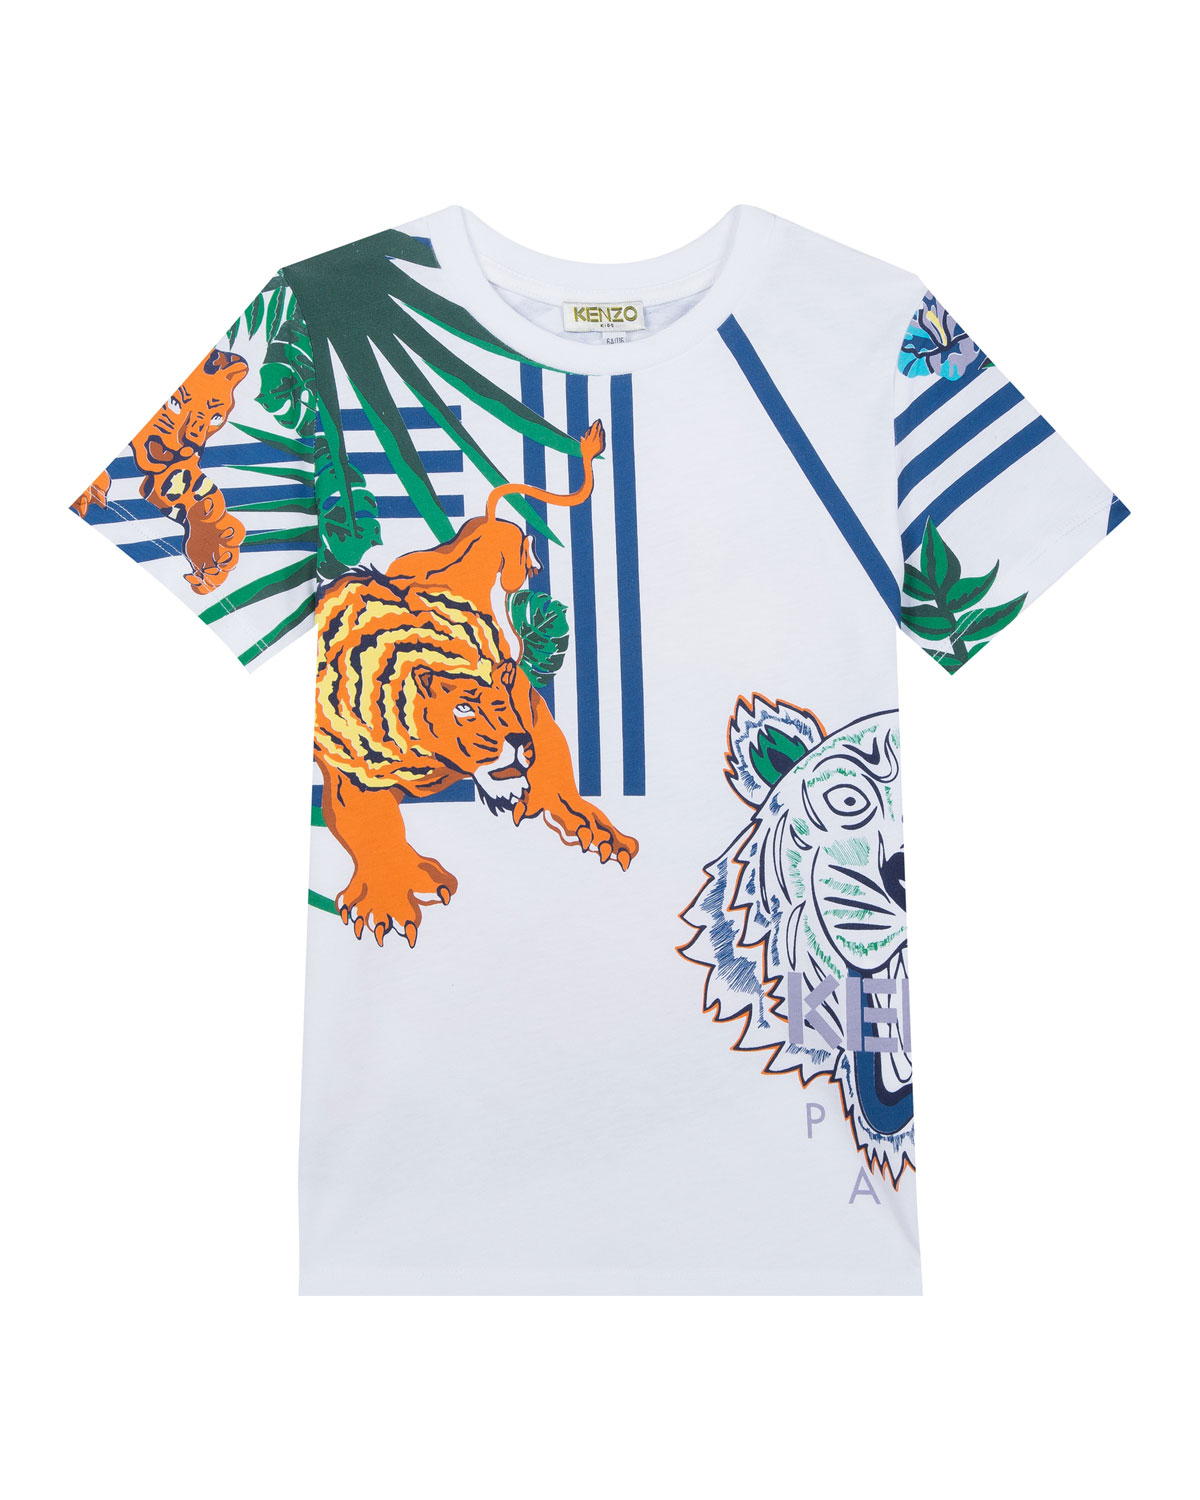 21afa142 Kenzo Multi-Icon Graphic T-Shirt, Size 2-4 | Neiman Marcus